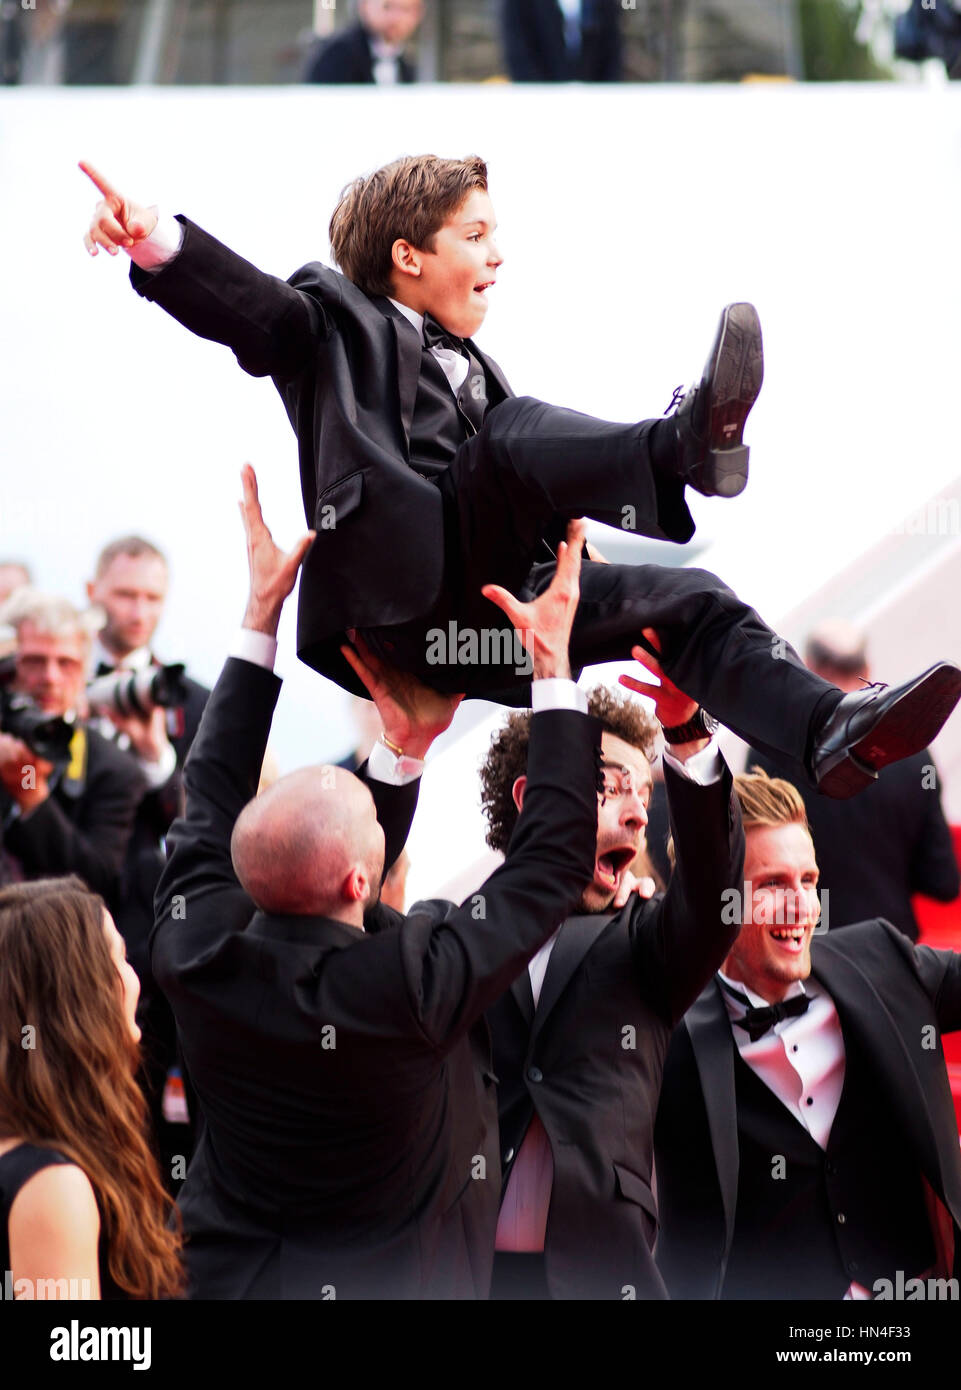 Enzo tomasini is thrown into the air by the cast of babysitting at enzo tomasini is thrown into the air by the cast of babysitting at the premiere for the film how to train your dragon 2 at the cannes film festival on may ccuart Image collections